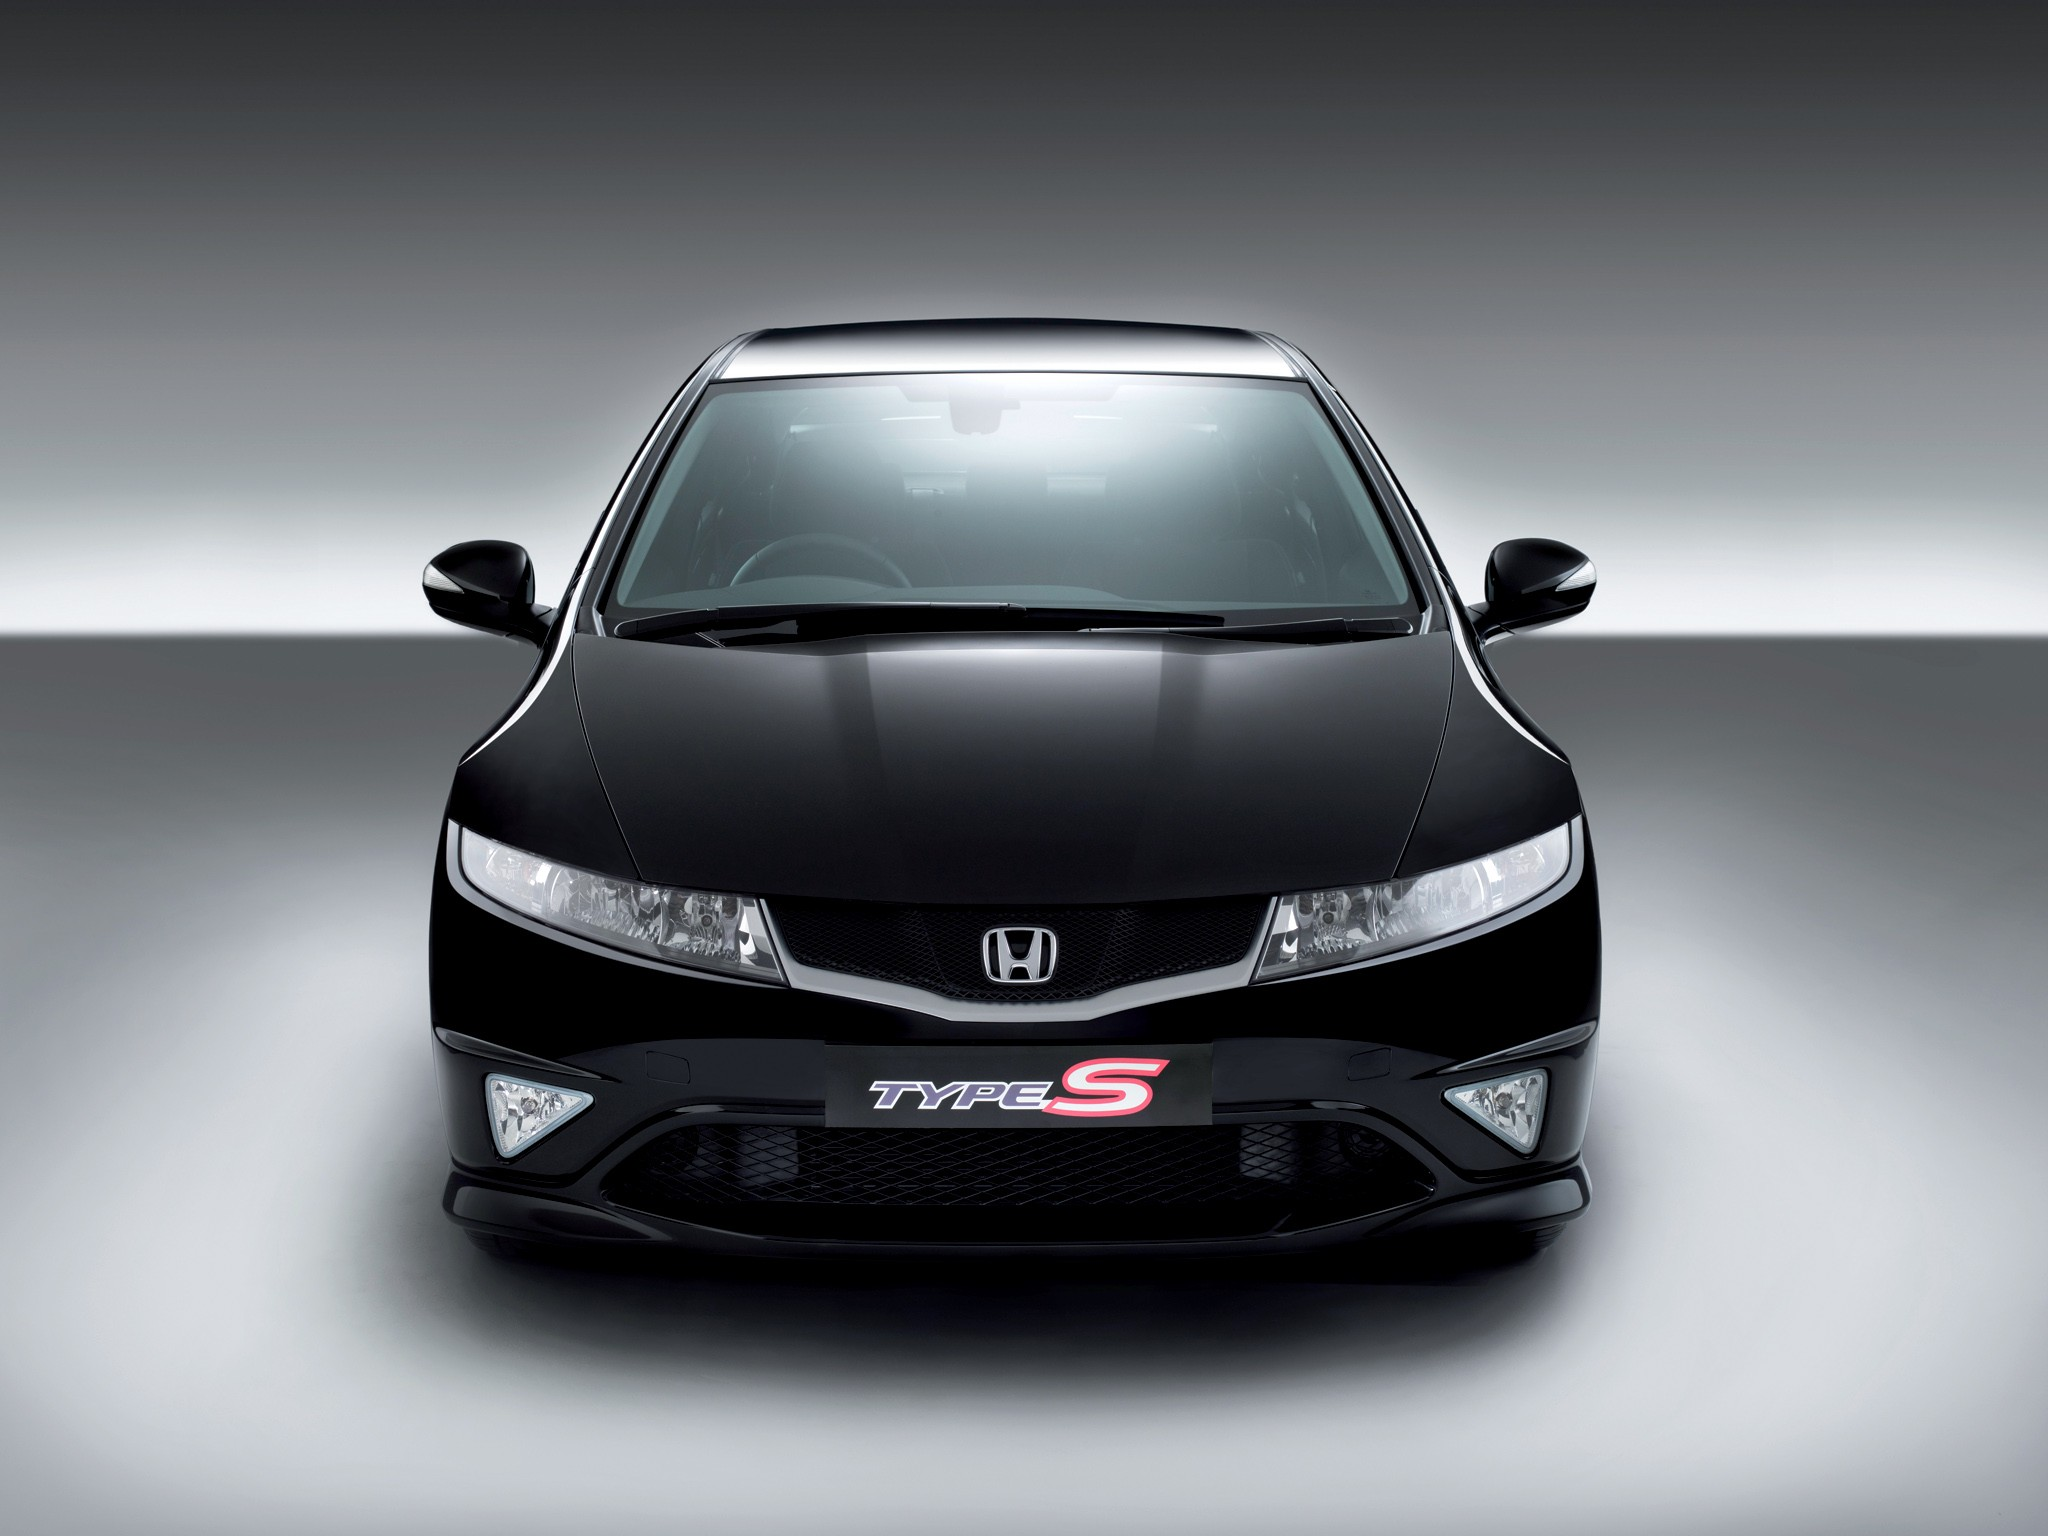 honda civic type s specs 2008 2009 2010 2011 autoevolution. Black Bedroom Furniture Sets. Home Design Ideas